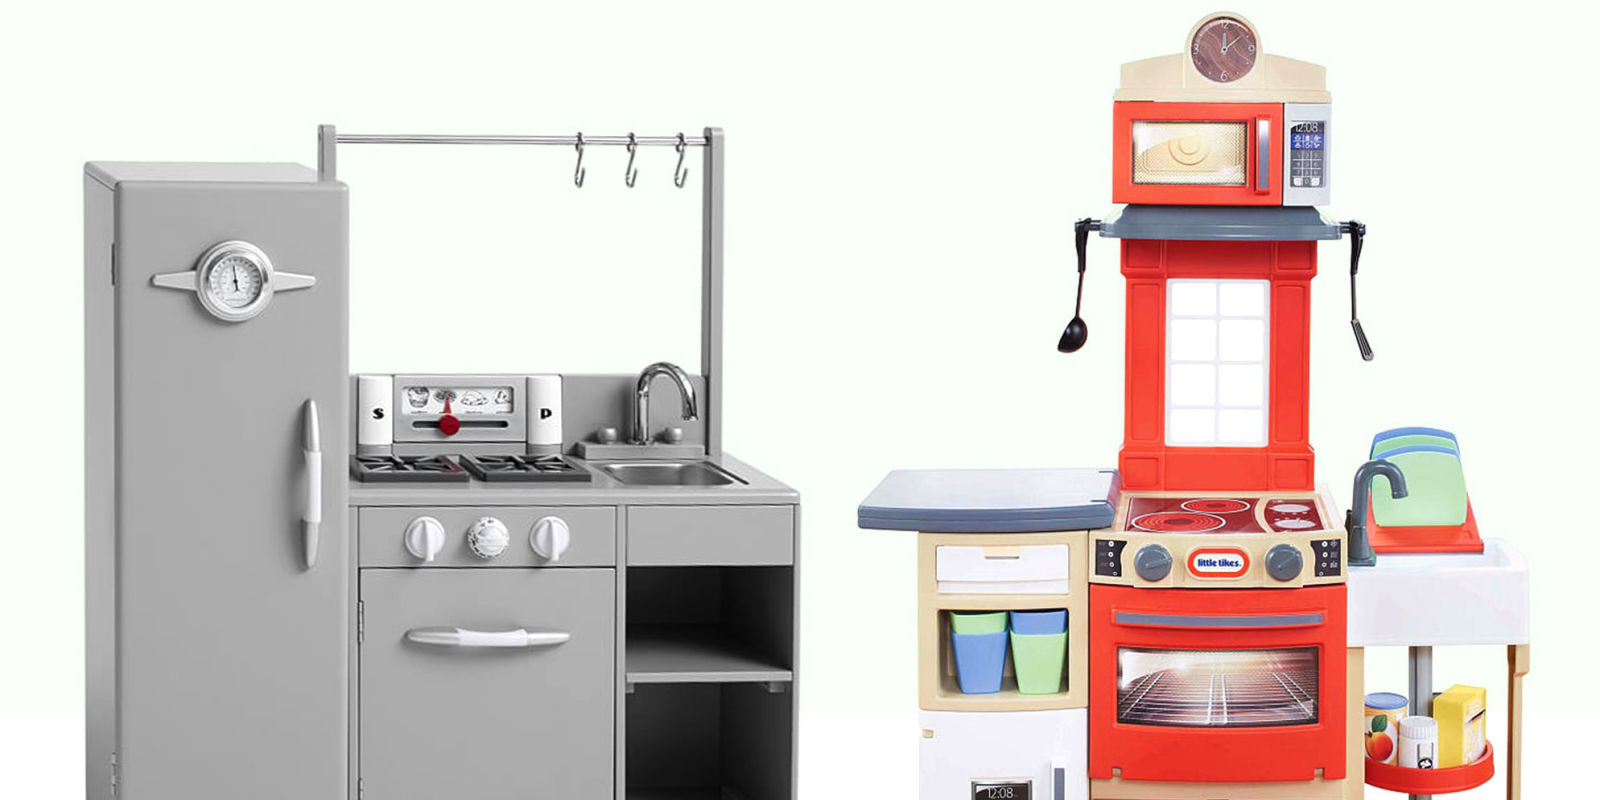 10 best play kitchens for kids in 2018 - adorable kids toy kitchen